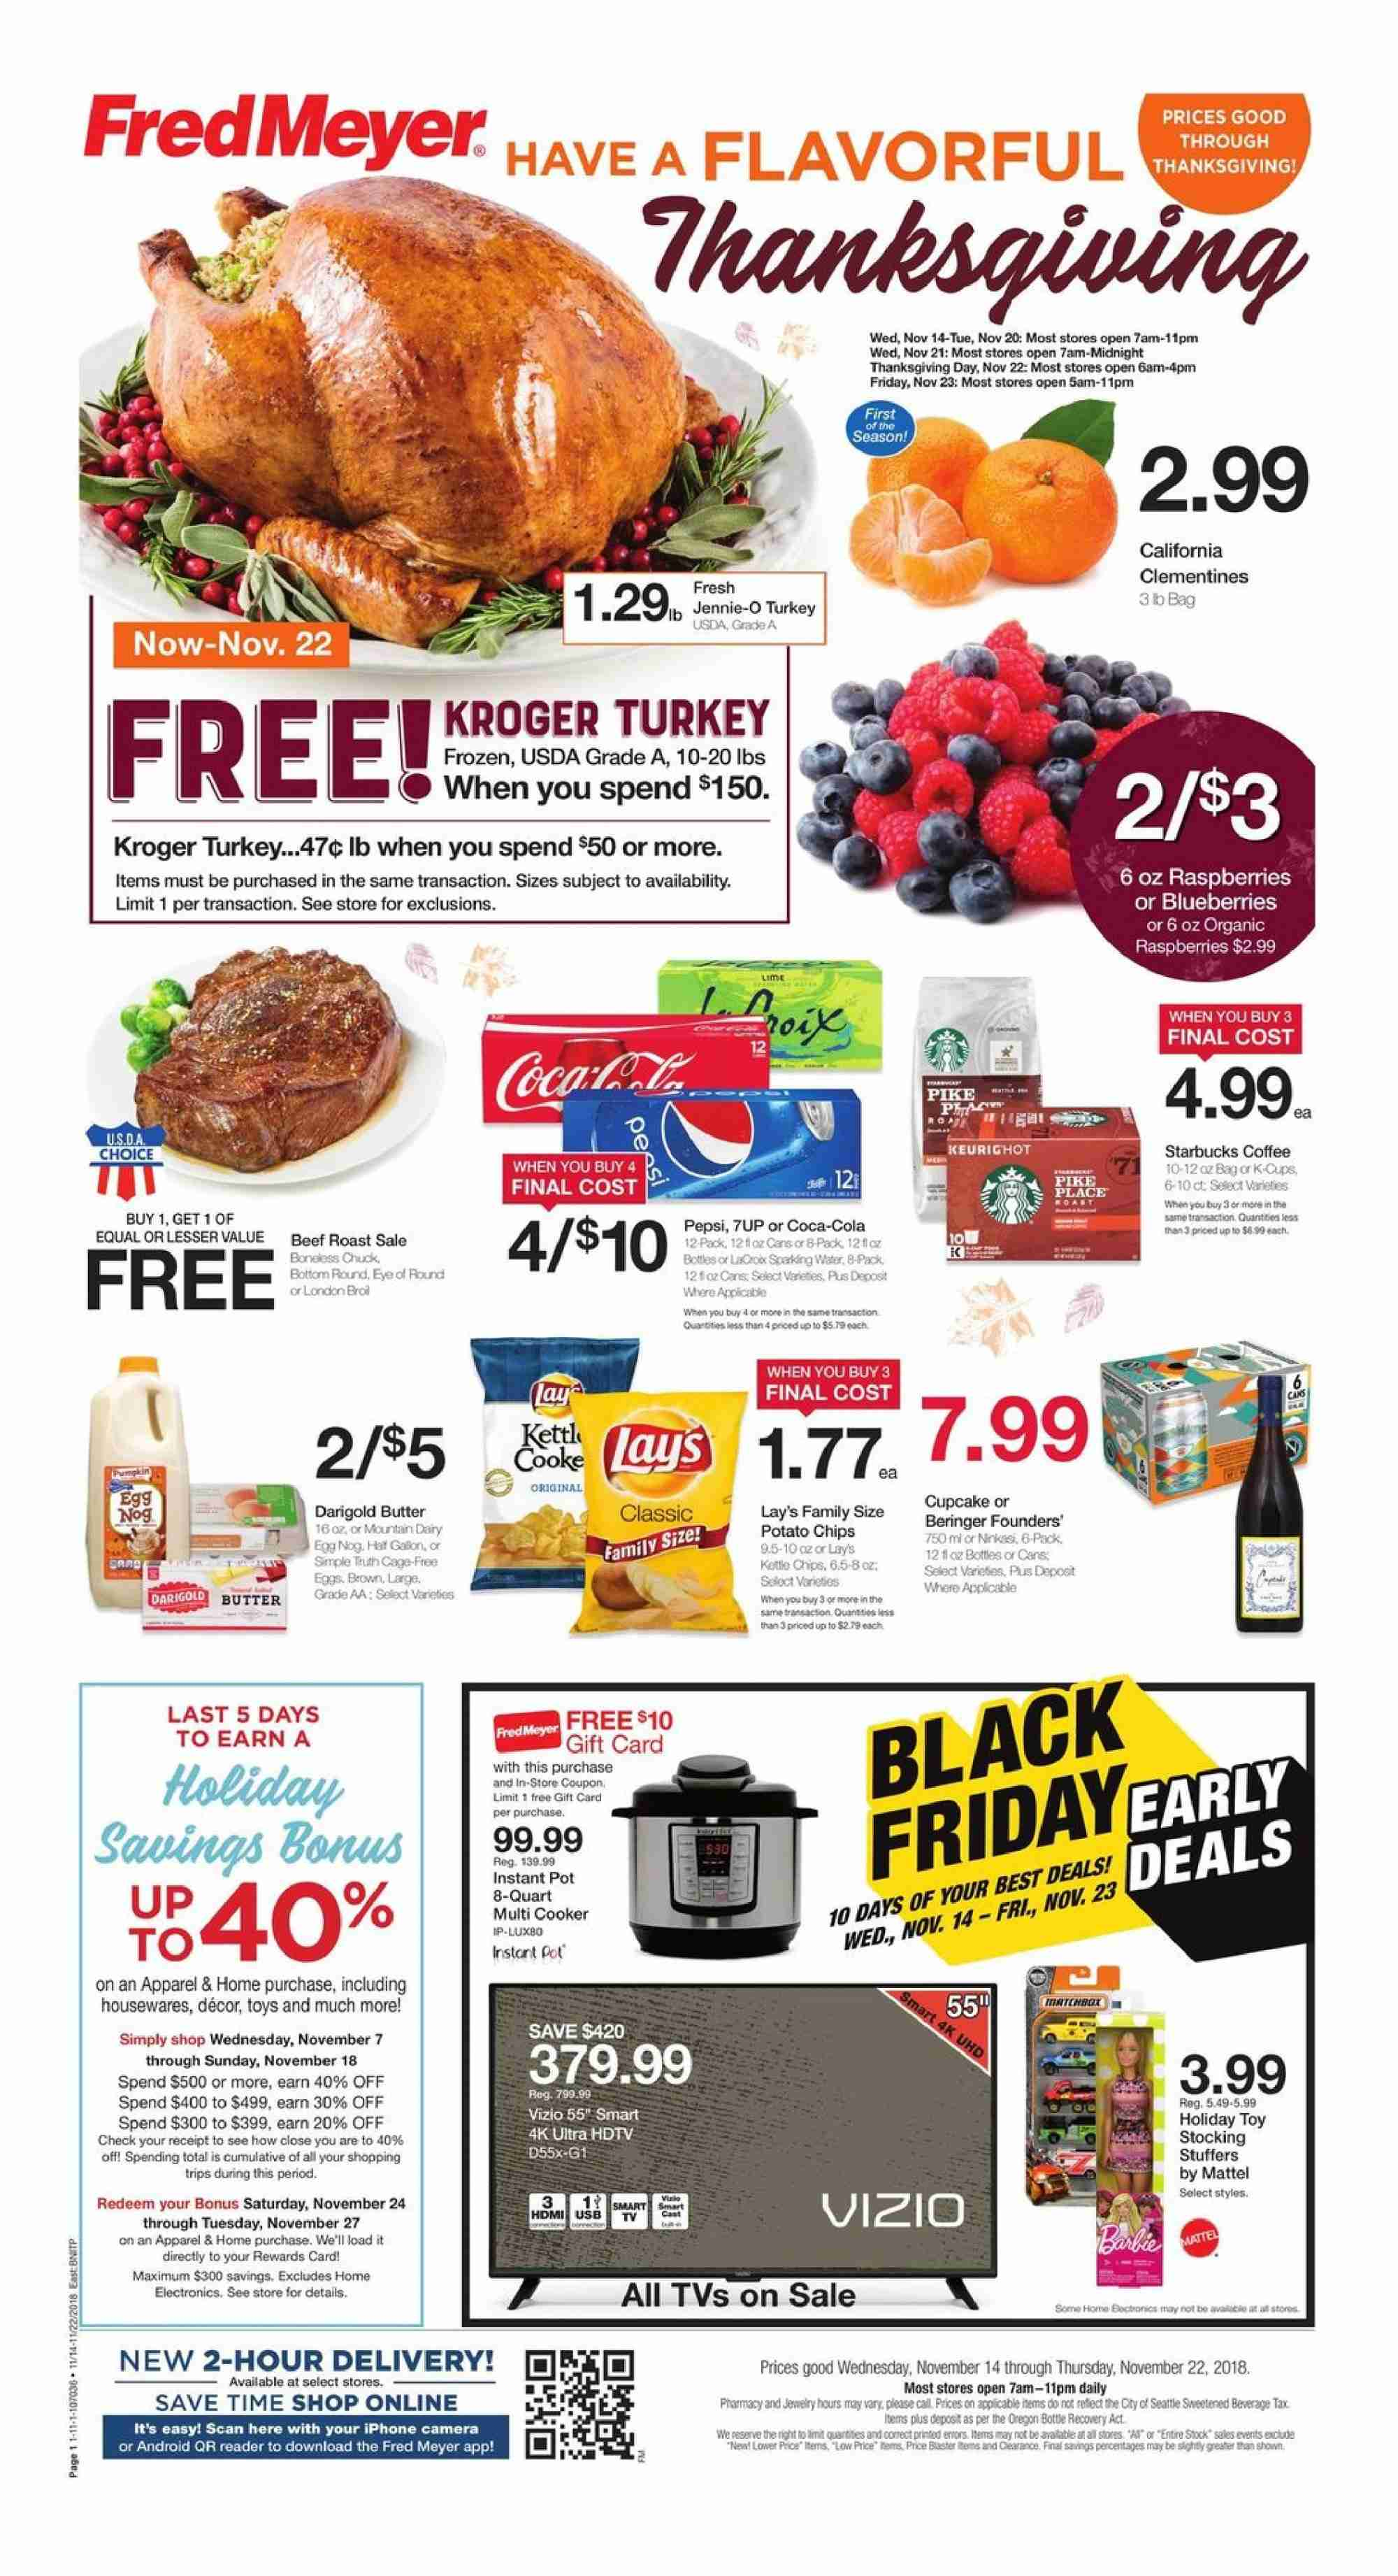 Fred Meyer Flyer - 11.14.2018 - 11.22.2018 - Sales products - clementines, Vizio, pike, eggs, chips, water, coffee, turkey, beef meat, beef roast, eye of round, pot, Frozen, iPhone, camera, HDTV, Mattel, toys, Starbucks. Page 1.